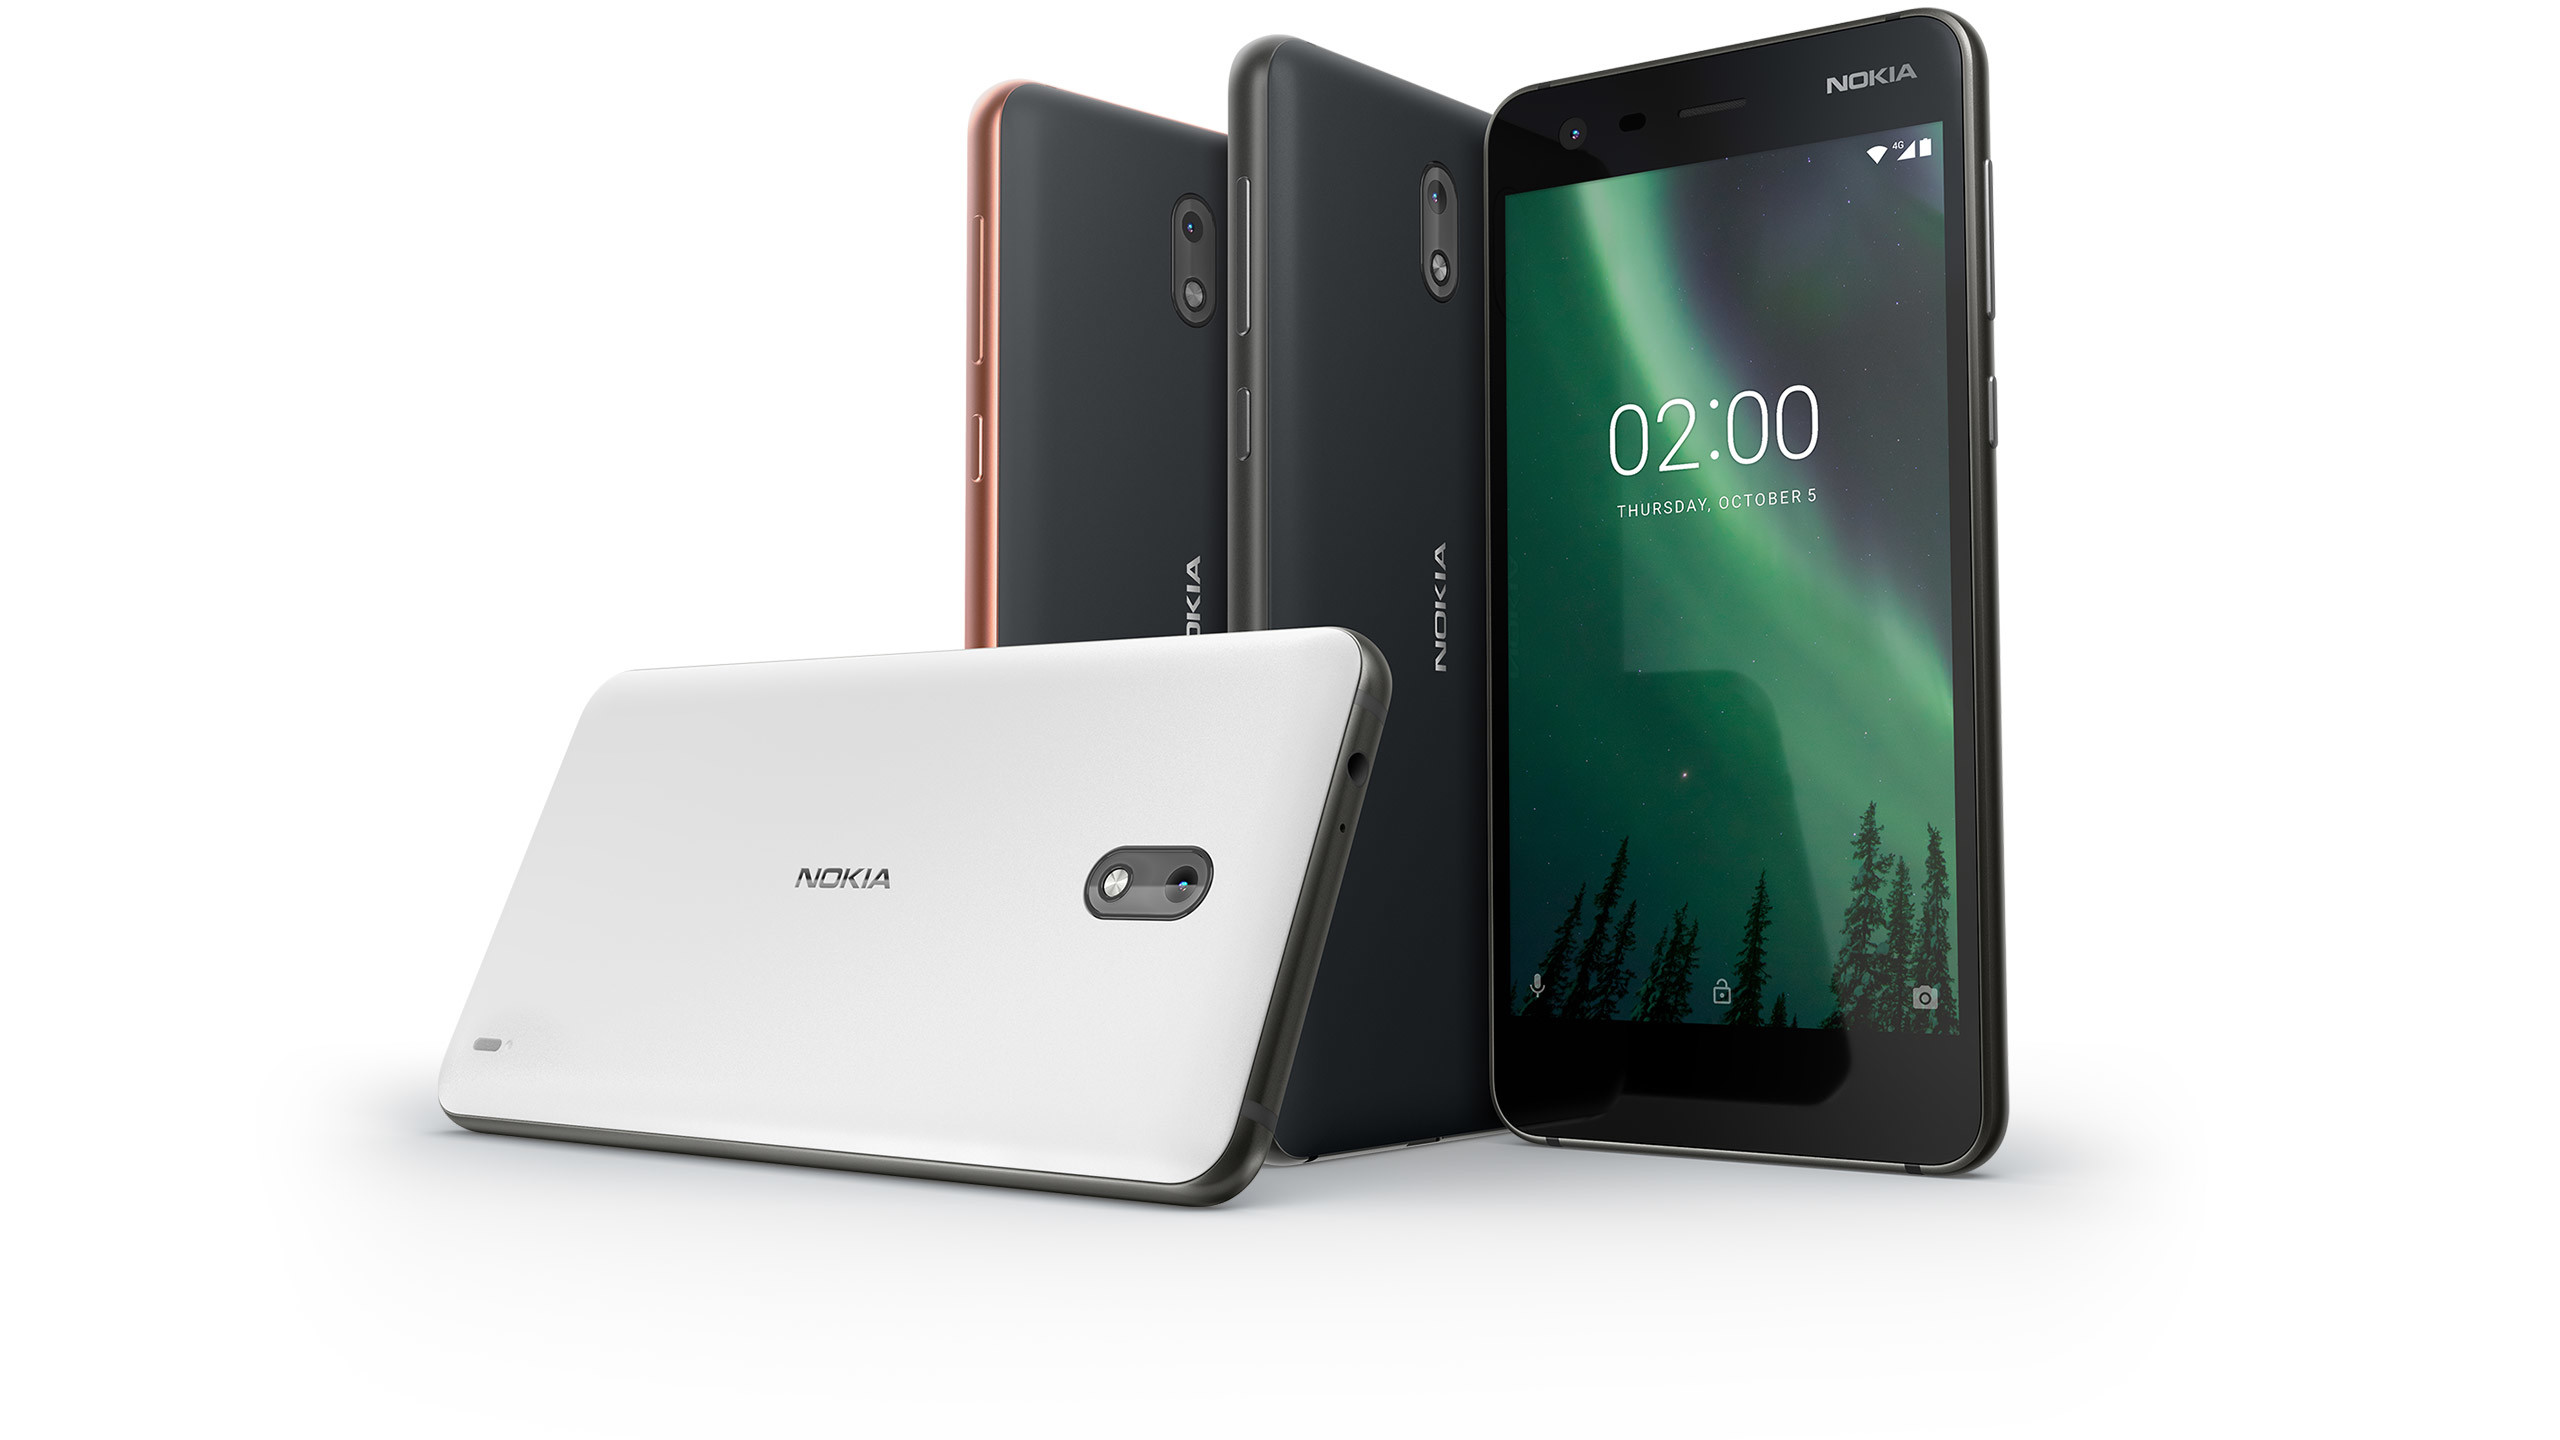 The Nokia 2 smartphone from HMD Global.